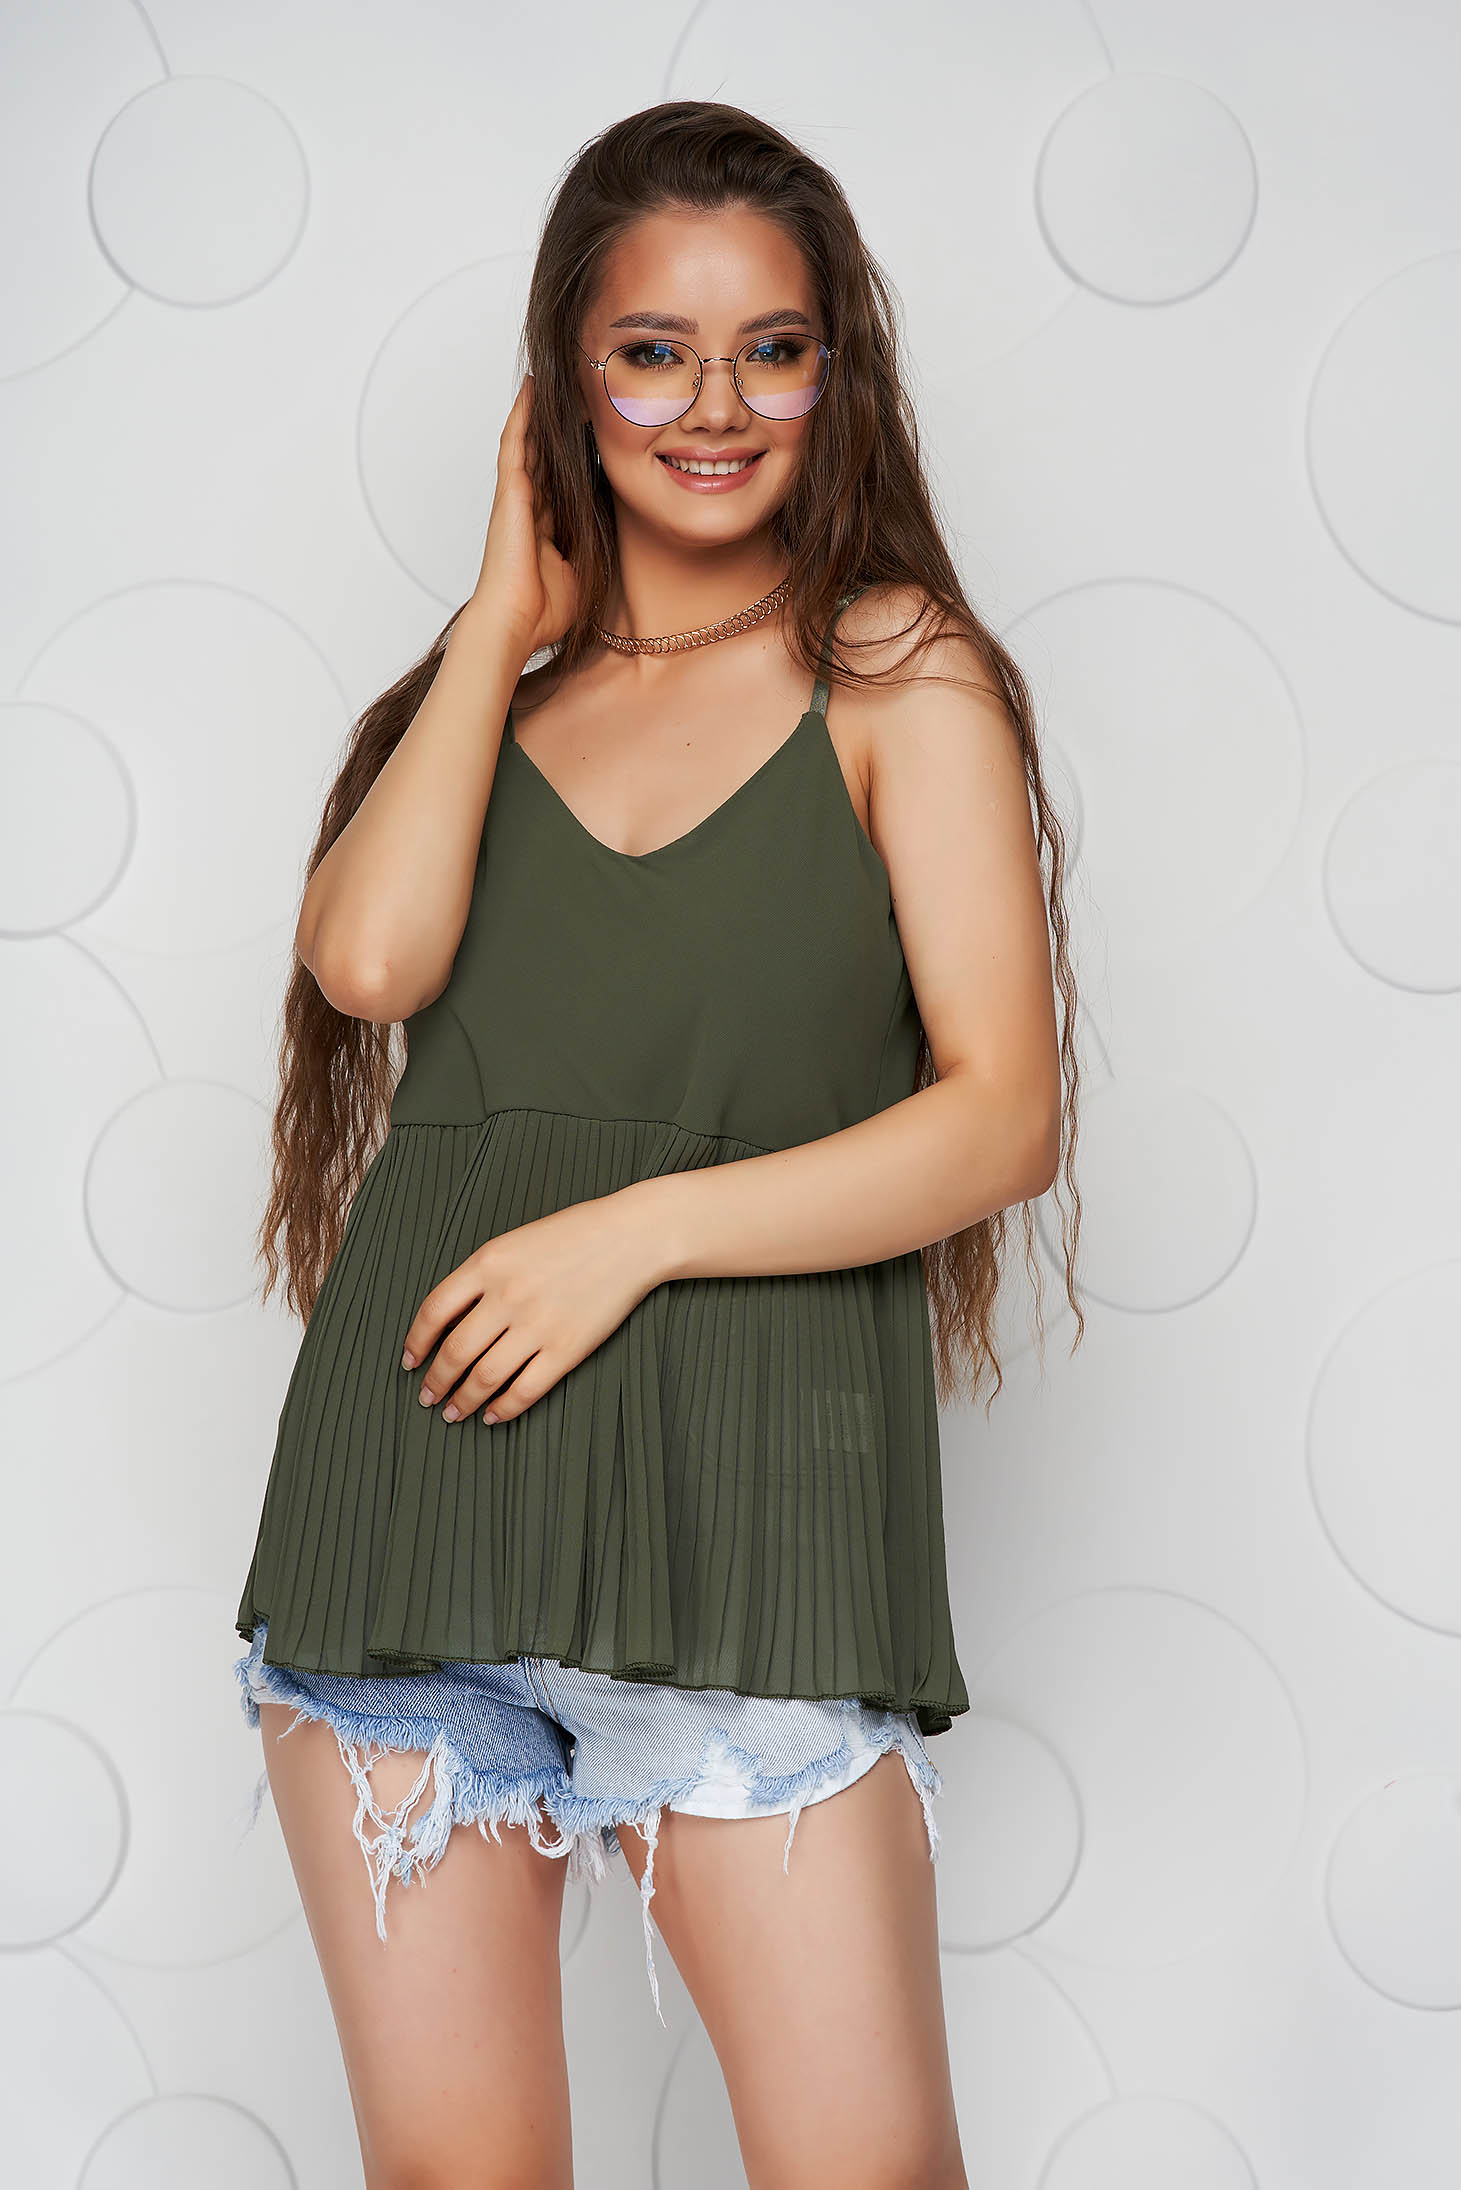 Khaki top shirt loose fit folded up from veil fabric with straps